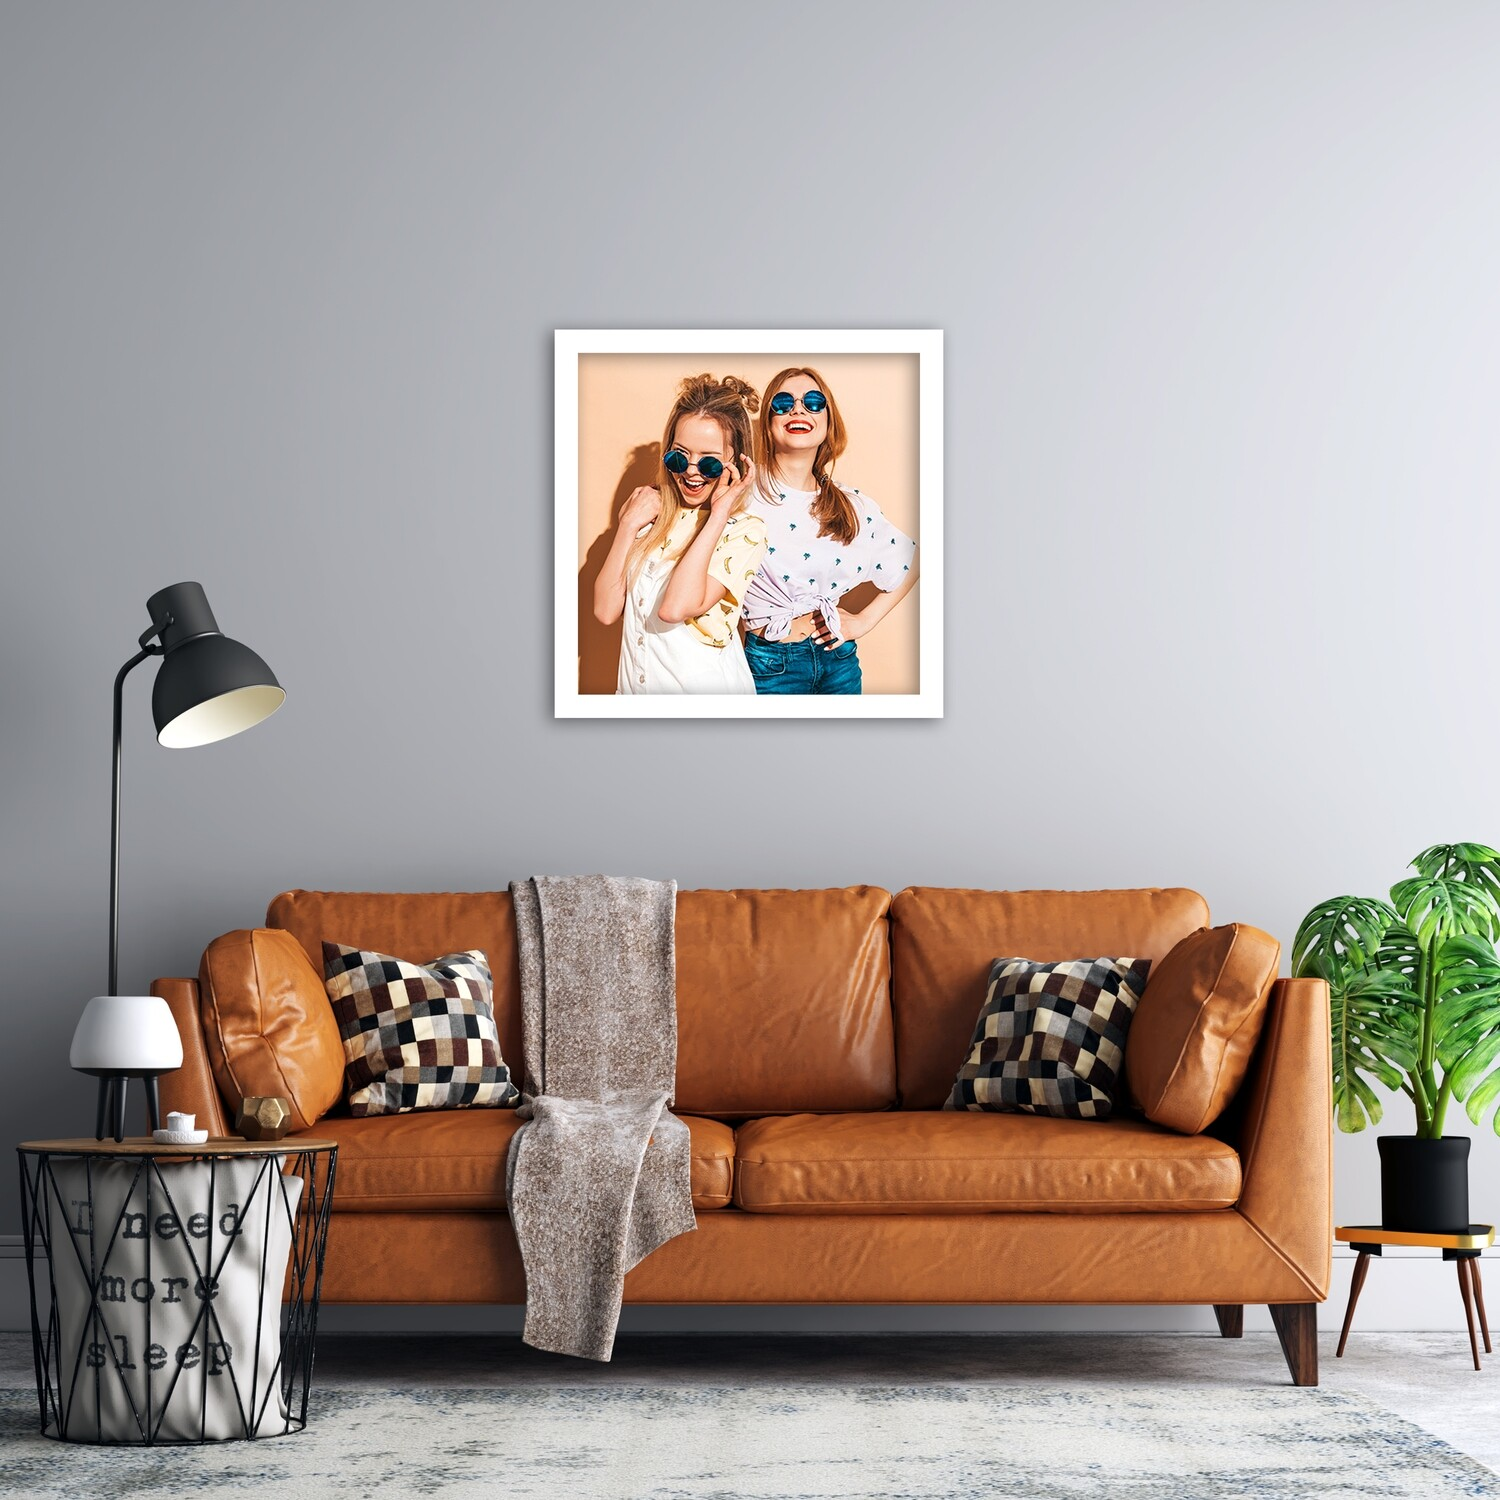 Framed Aluminium Wall Panel- Ready To Hang- 8 Options To Choose From